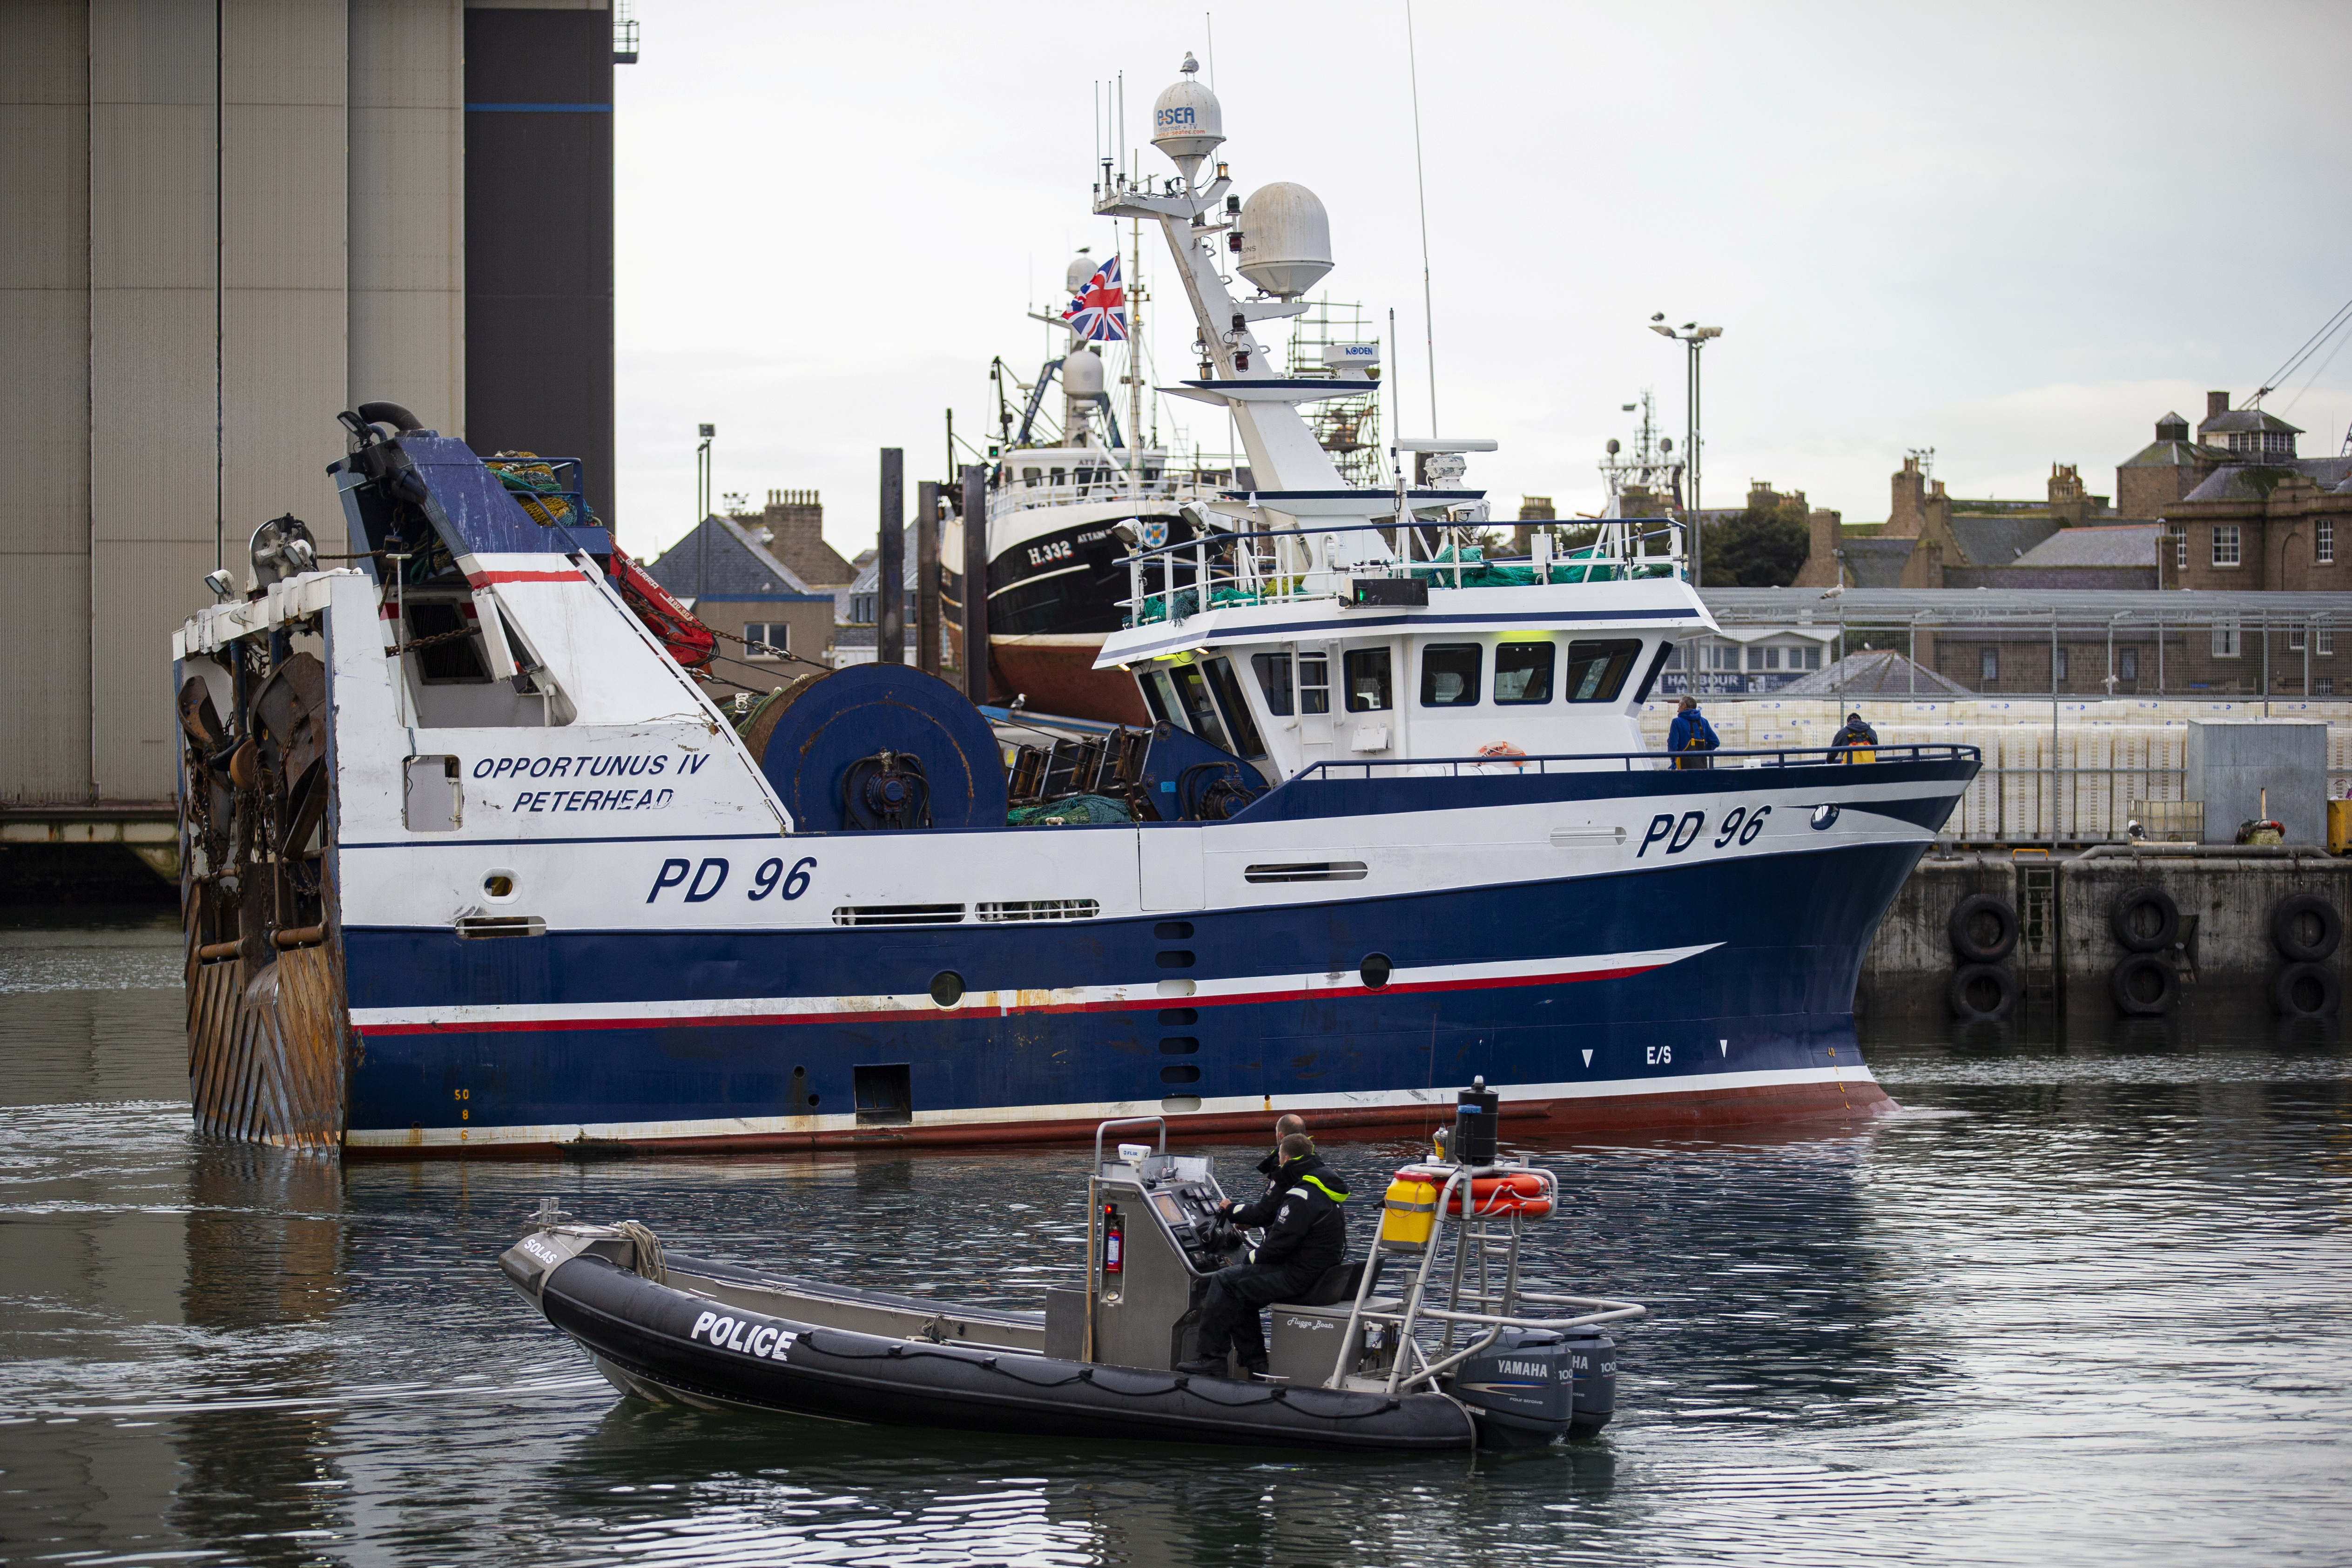 The Opportunus IV fishing trawler is seen at Peterhead harbour during a visit of Britain's Prime Minister Boris Johnson (not pictured) to Peterhead Fish Market in Peterhead, Scotland, Britain September 6, 2019. — Pool picture via Reuters